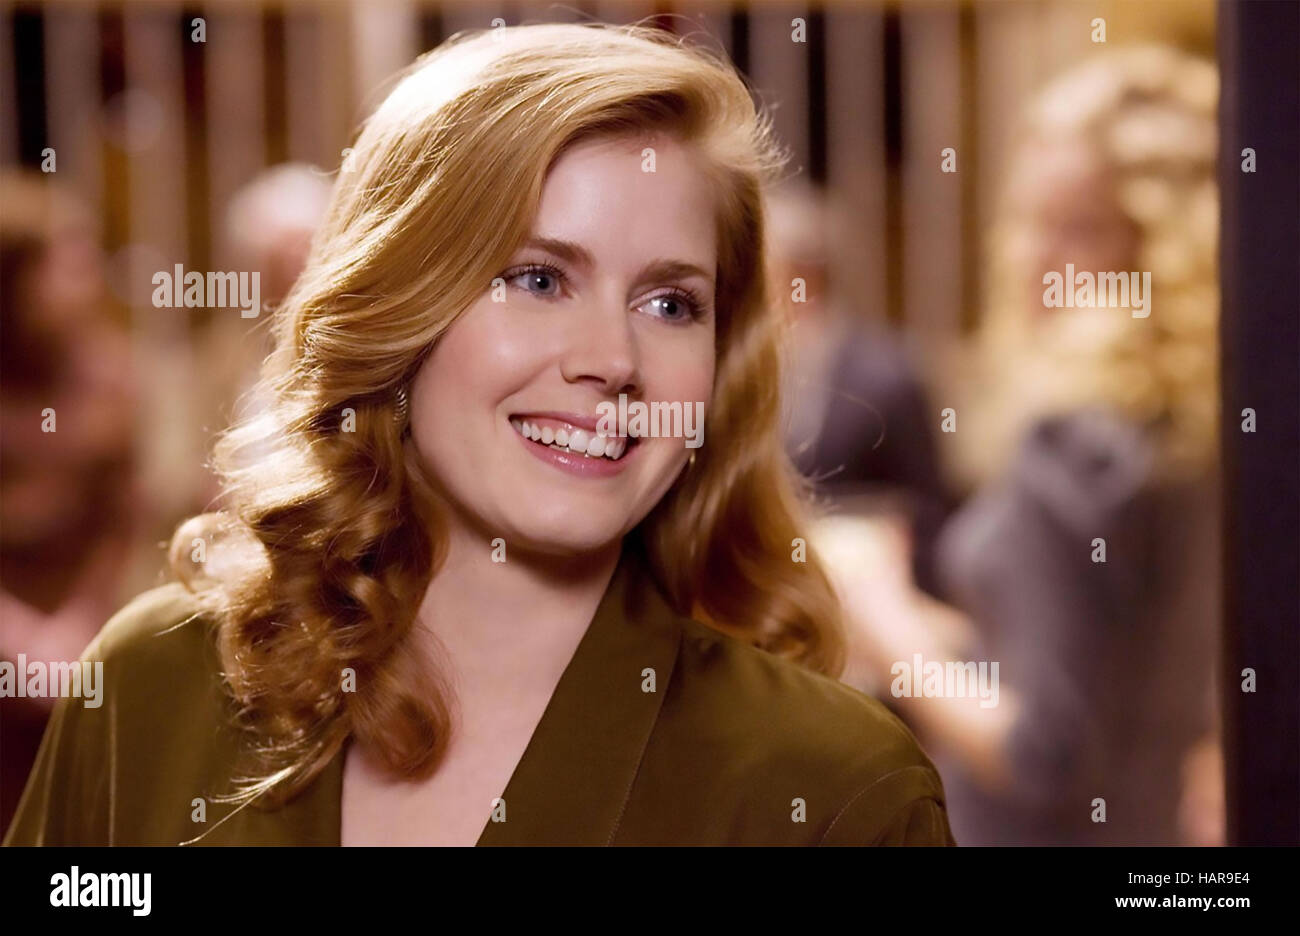 CHARLIE WILSON'S WAR 2007 Paramount film with Amy Adams - Stock Image